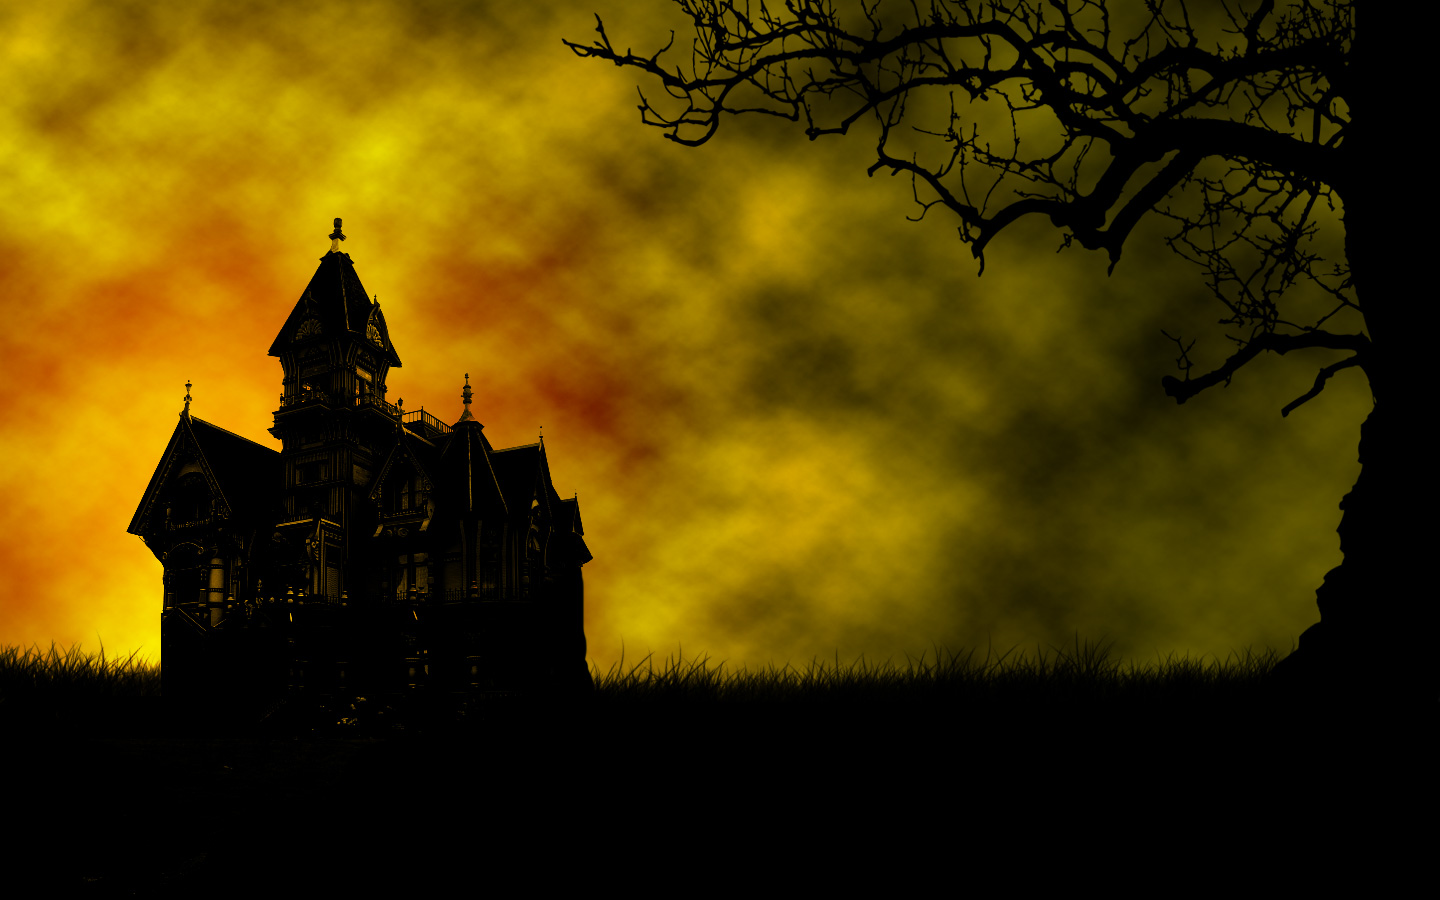 collector of many things one of which are pictures of Haunted Houses 1440x900